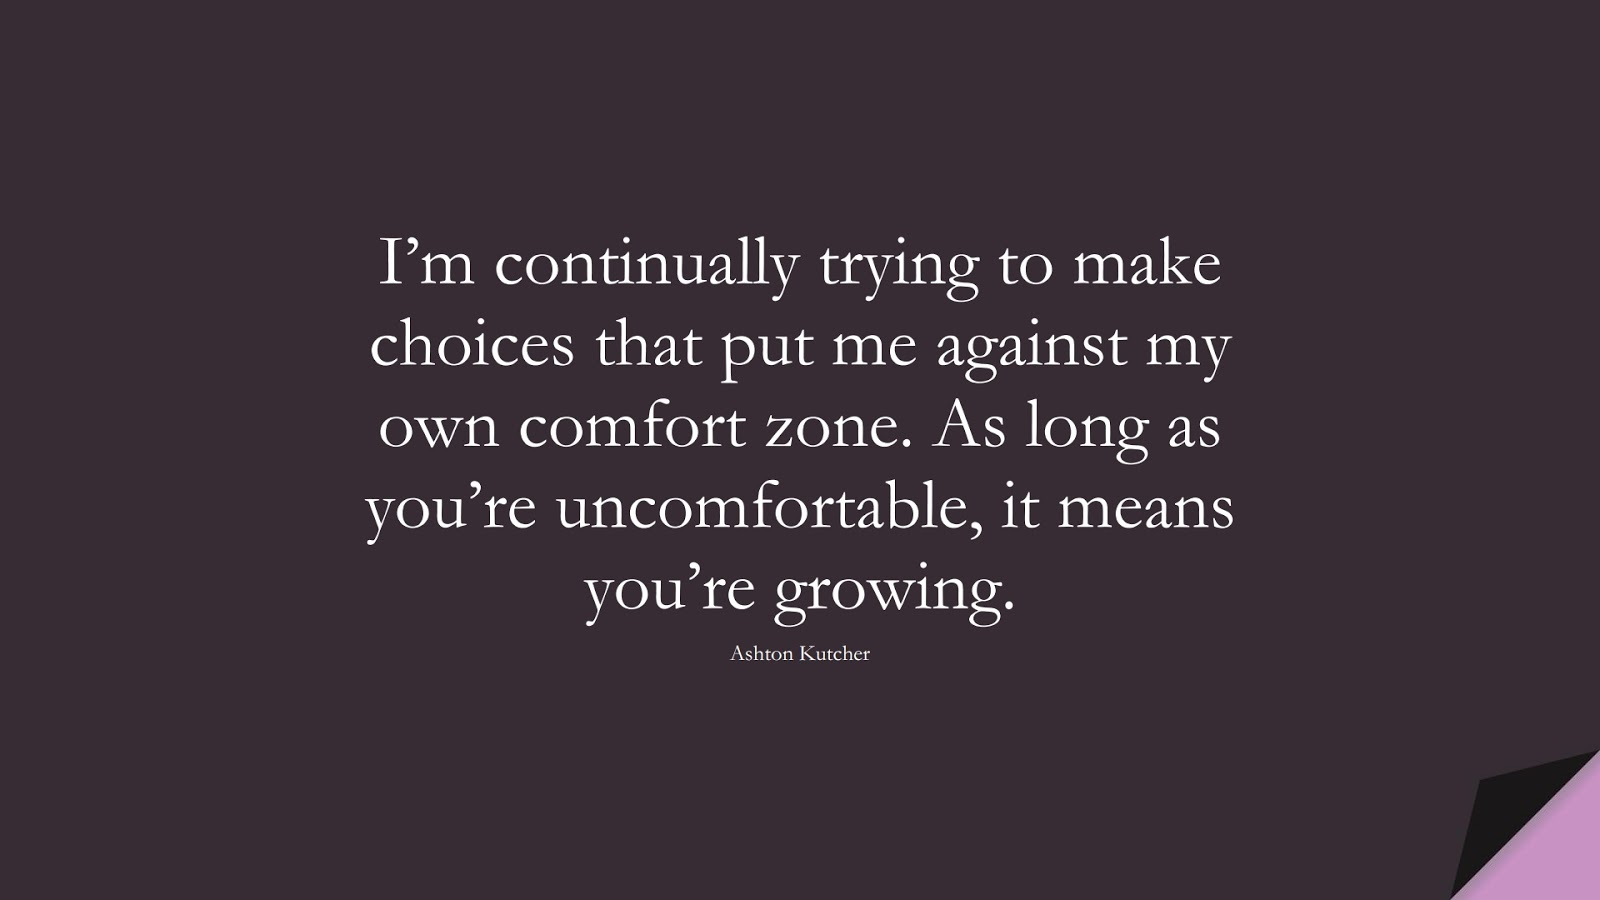 I'm continually trying to make choices that put me against my own comfort zone. As long as you're uncomfortable, it means you're growing. (Ashton Kutcher);  #FamousQuotes